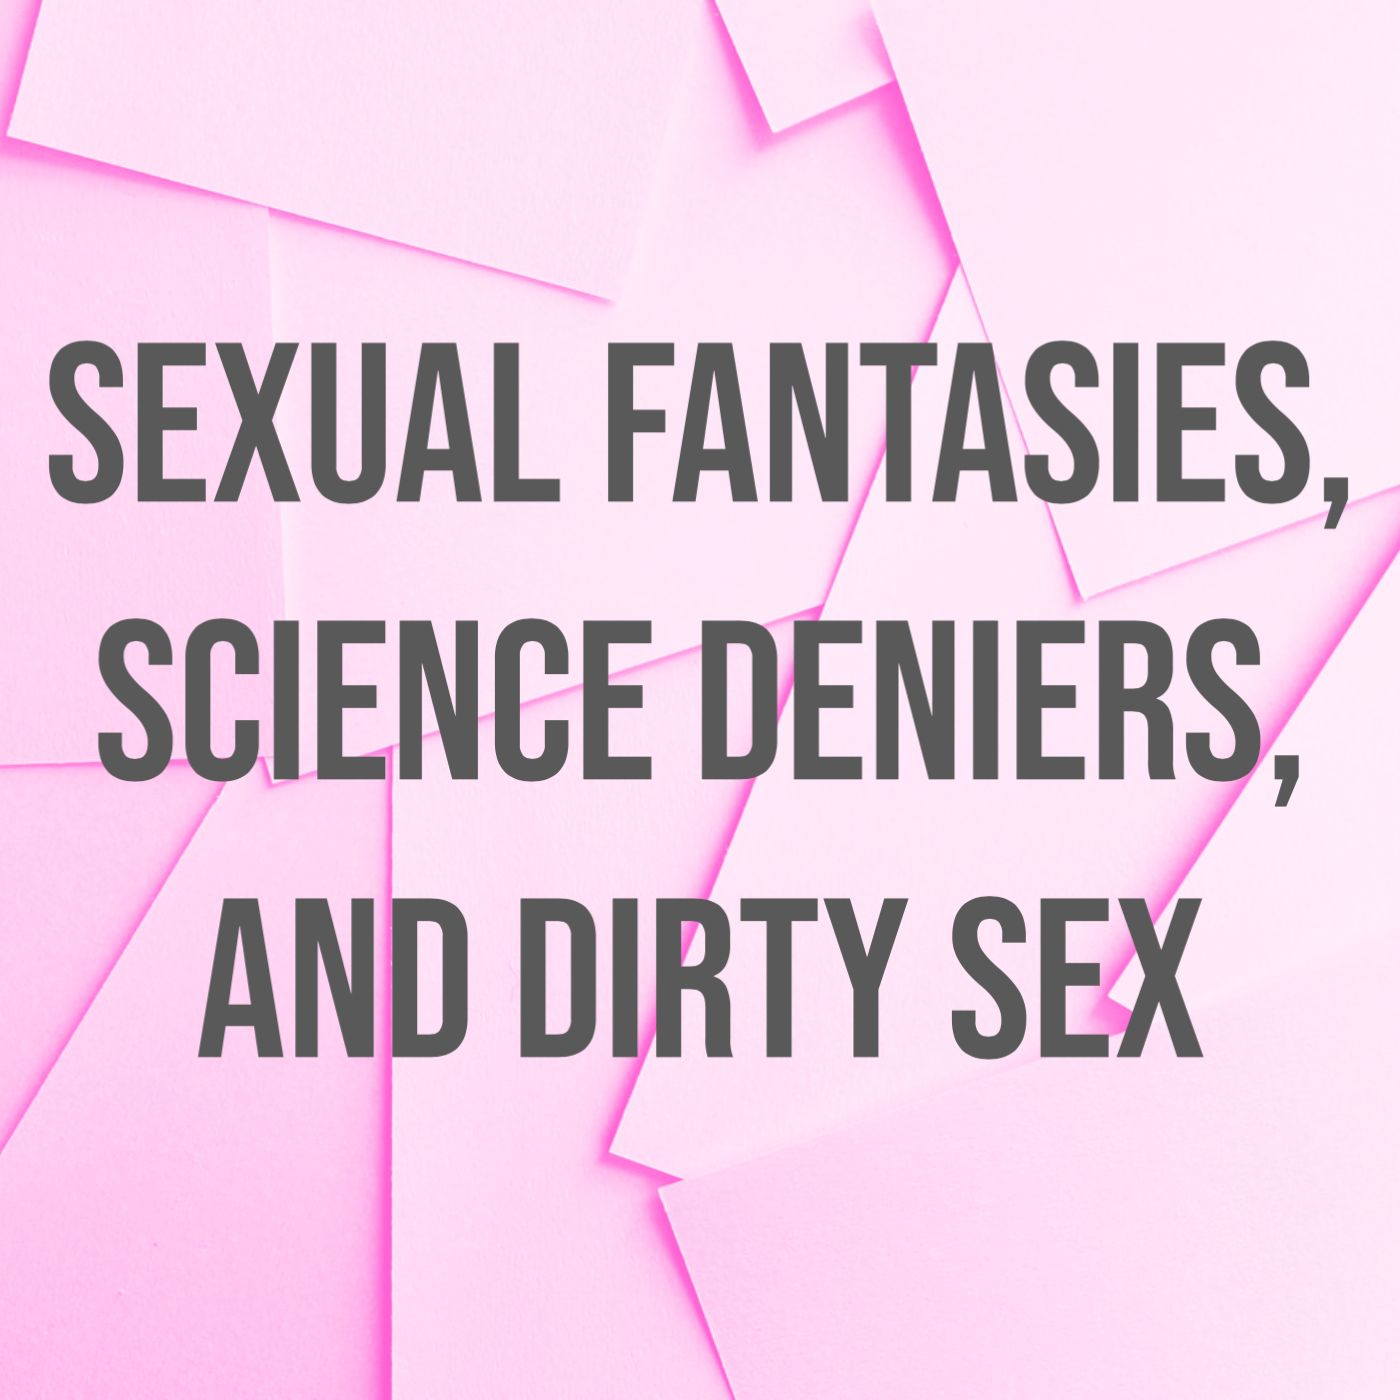 Sexual Fantasies, Science Deniers, and Dirty Sex